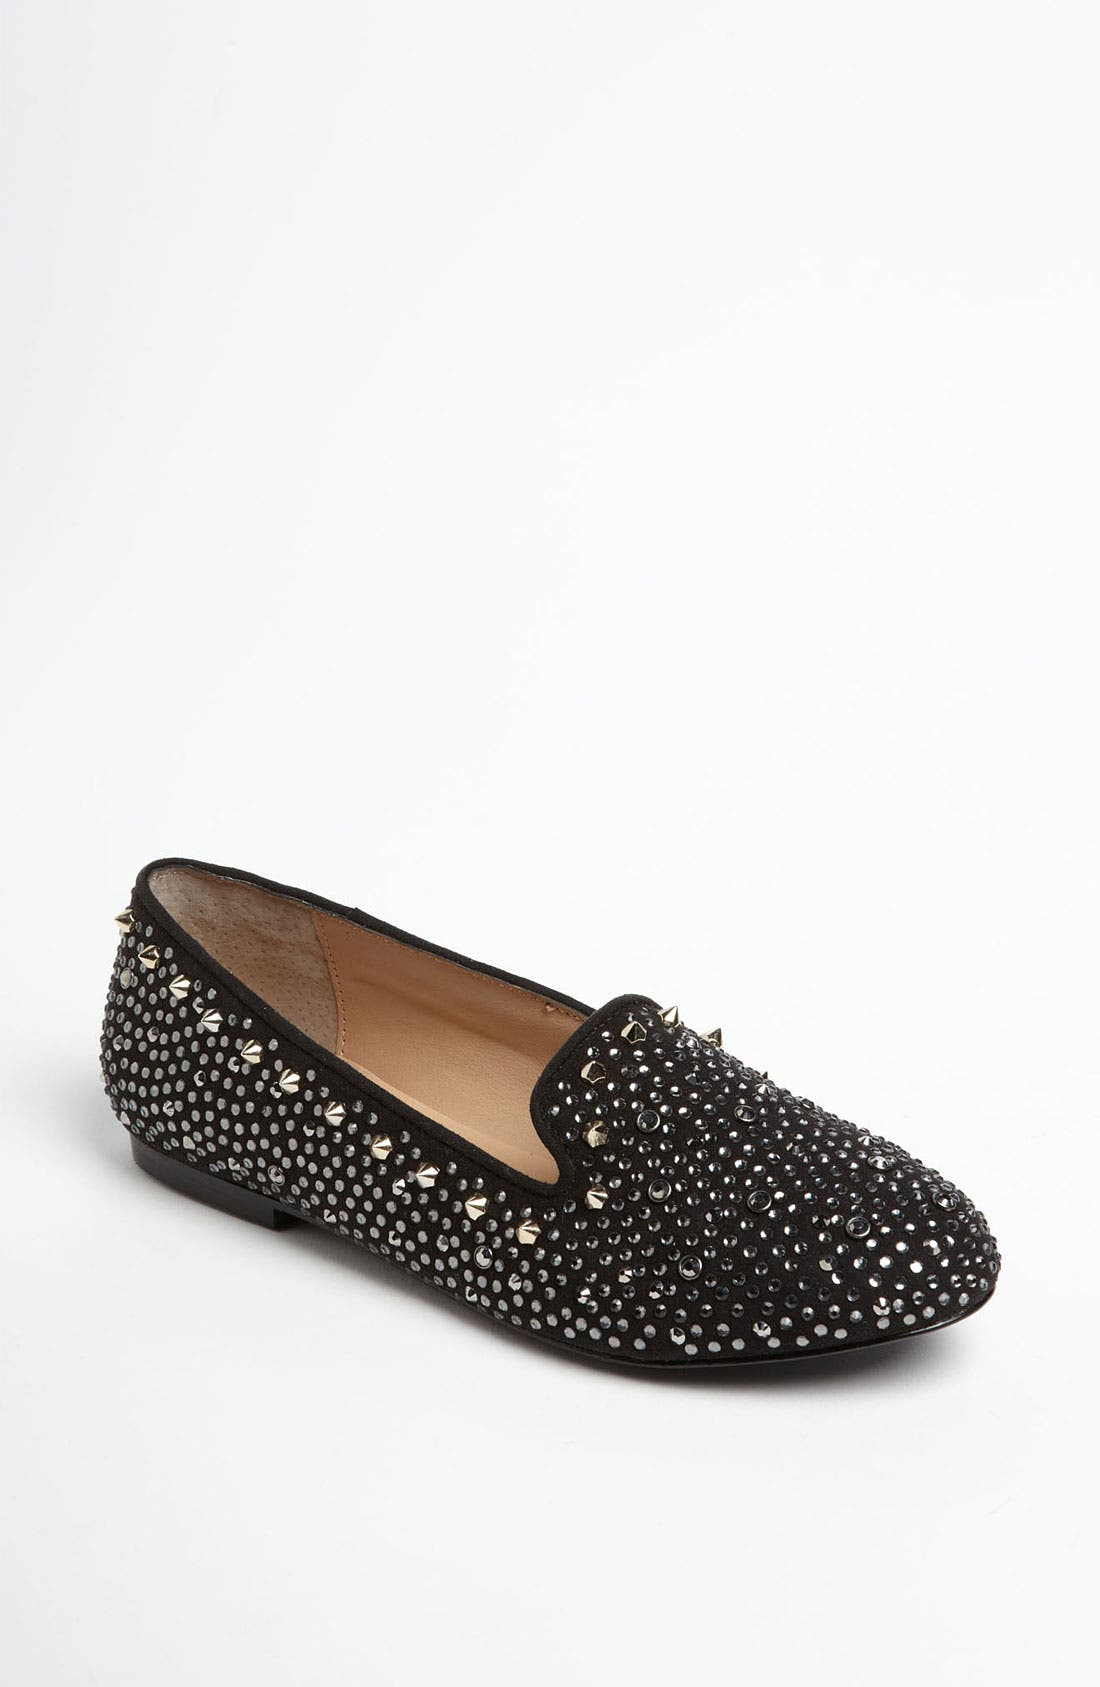 Alternate Image 1 Selected - Steve Madden 'Graanite' Flat